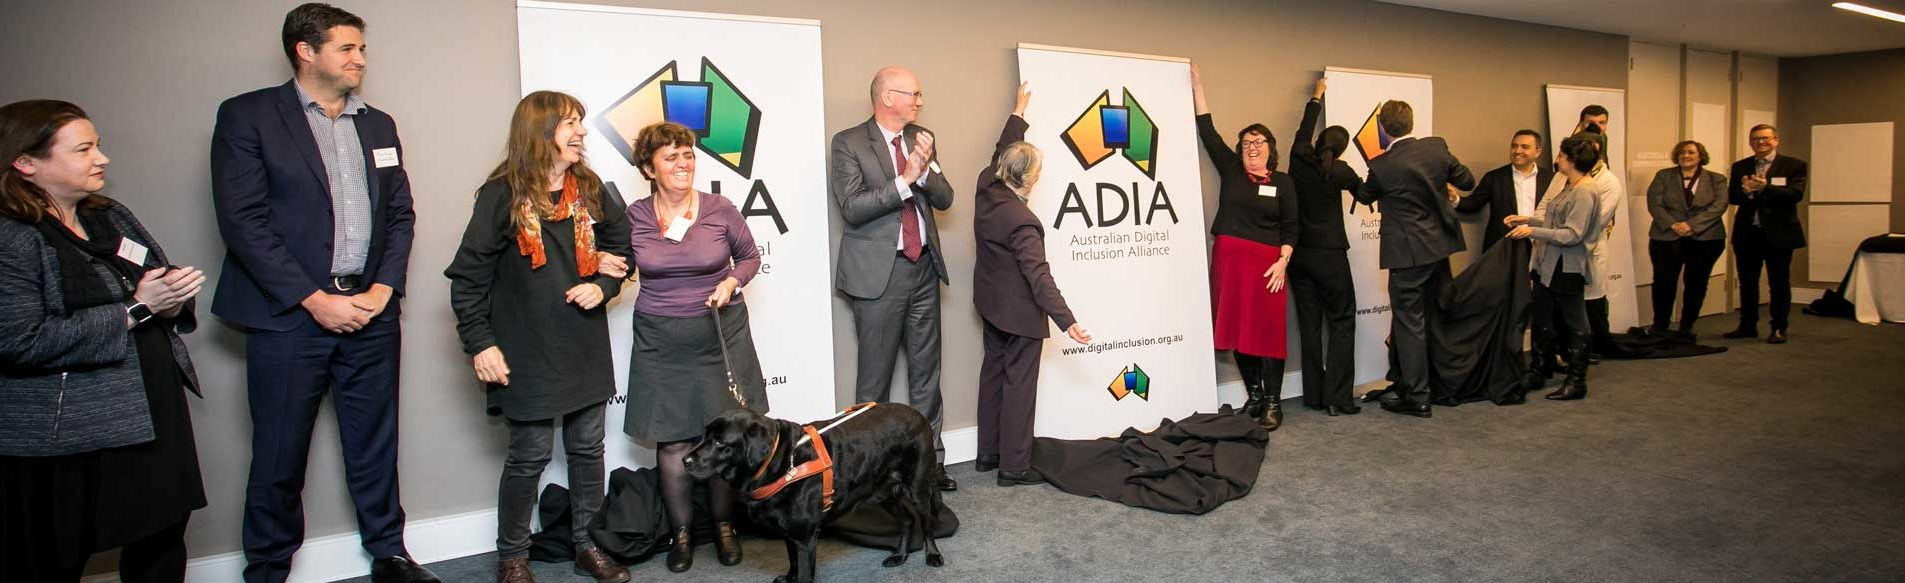 Australian Digital Inclusion Alliance - People at the launch of the ADIA in 2017